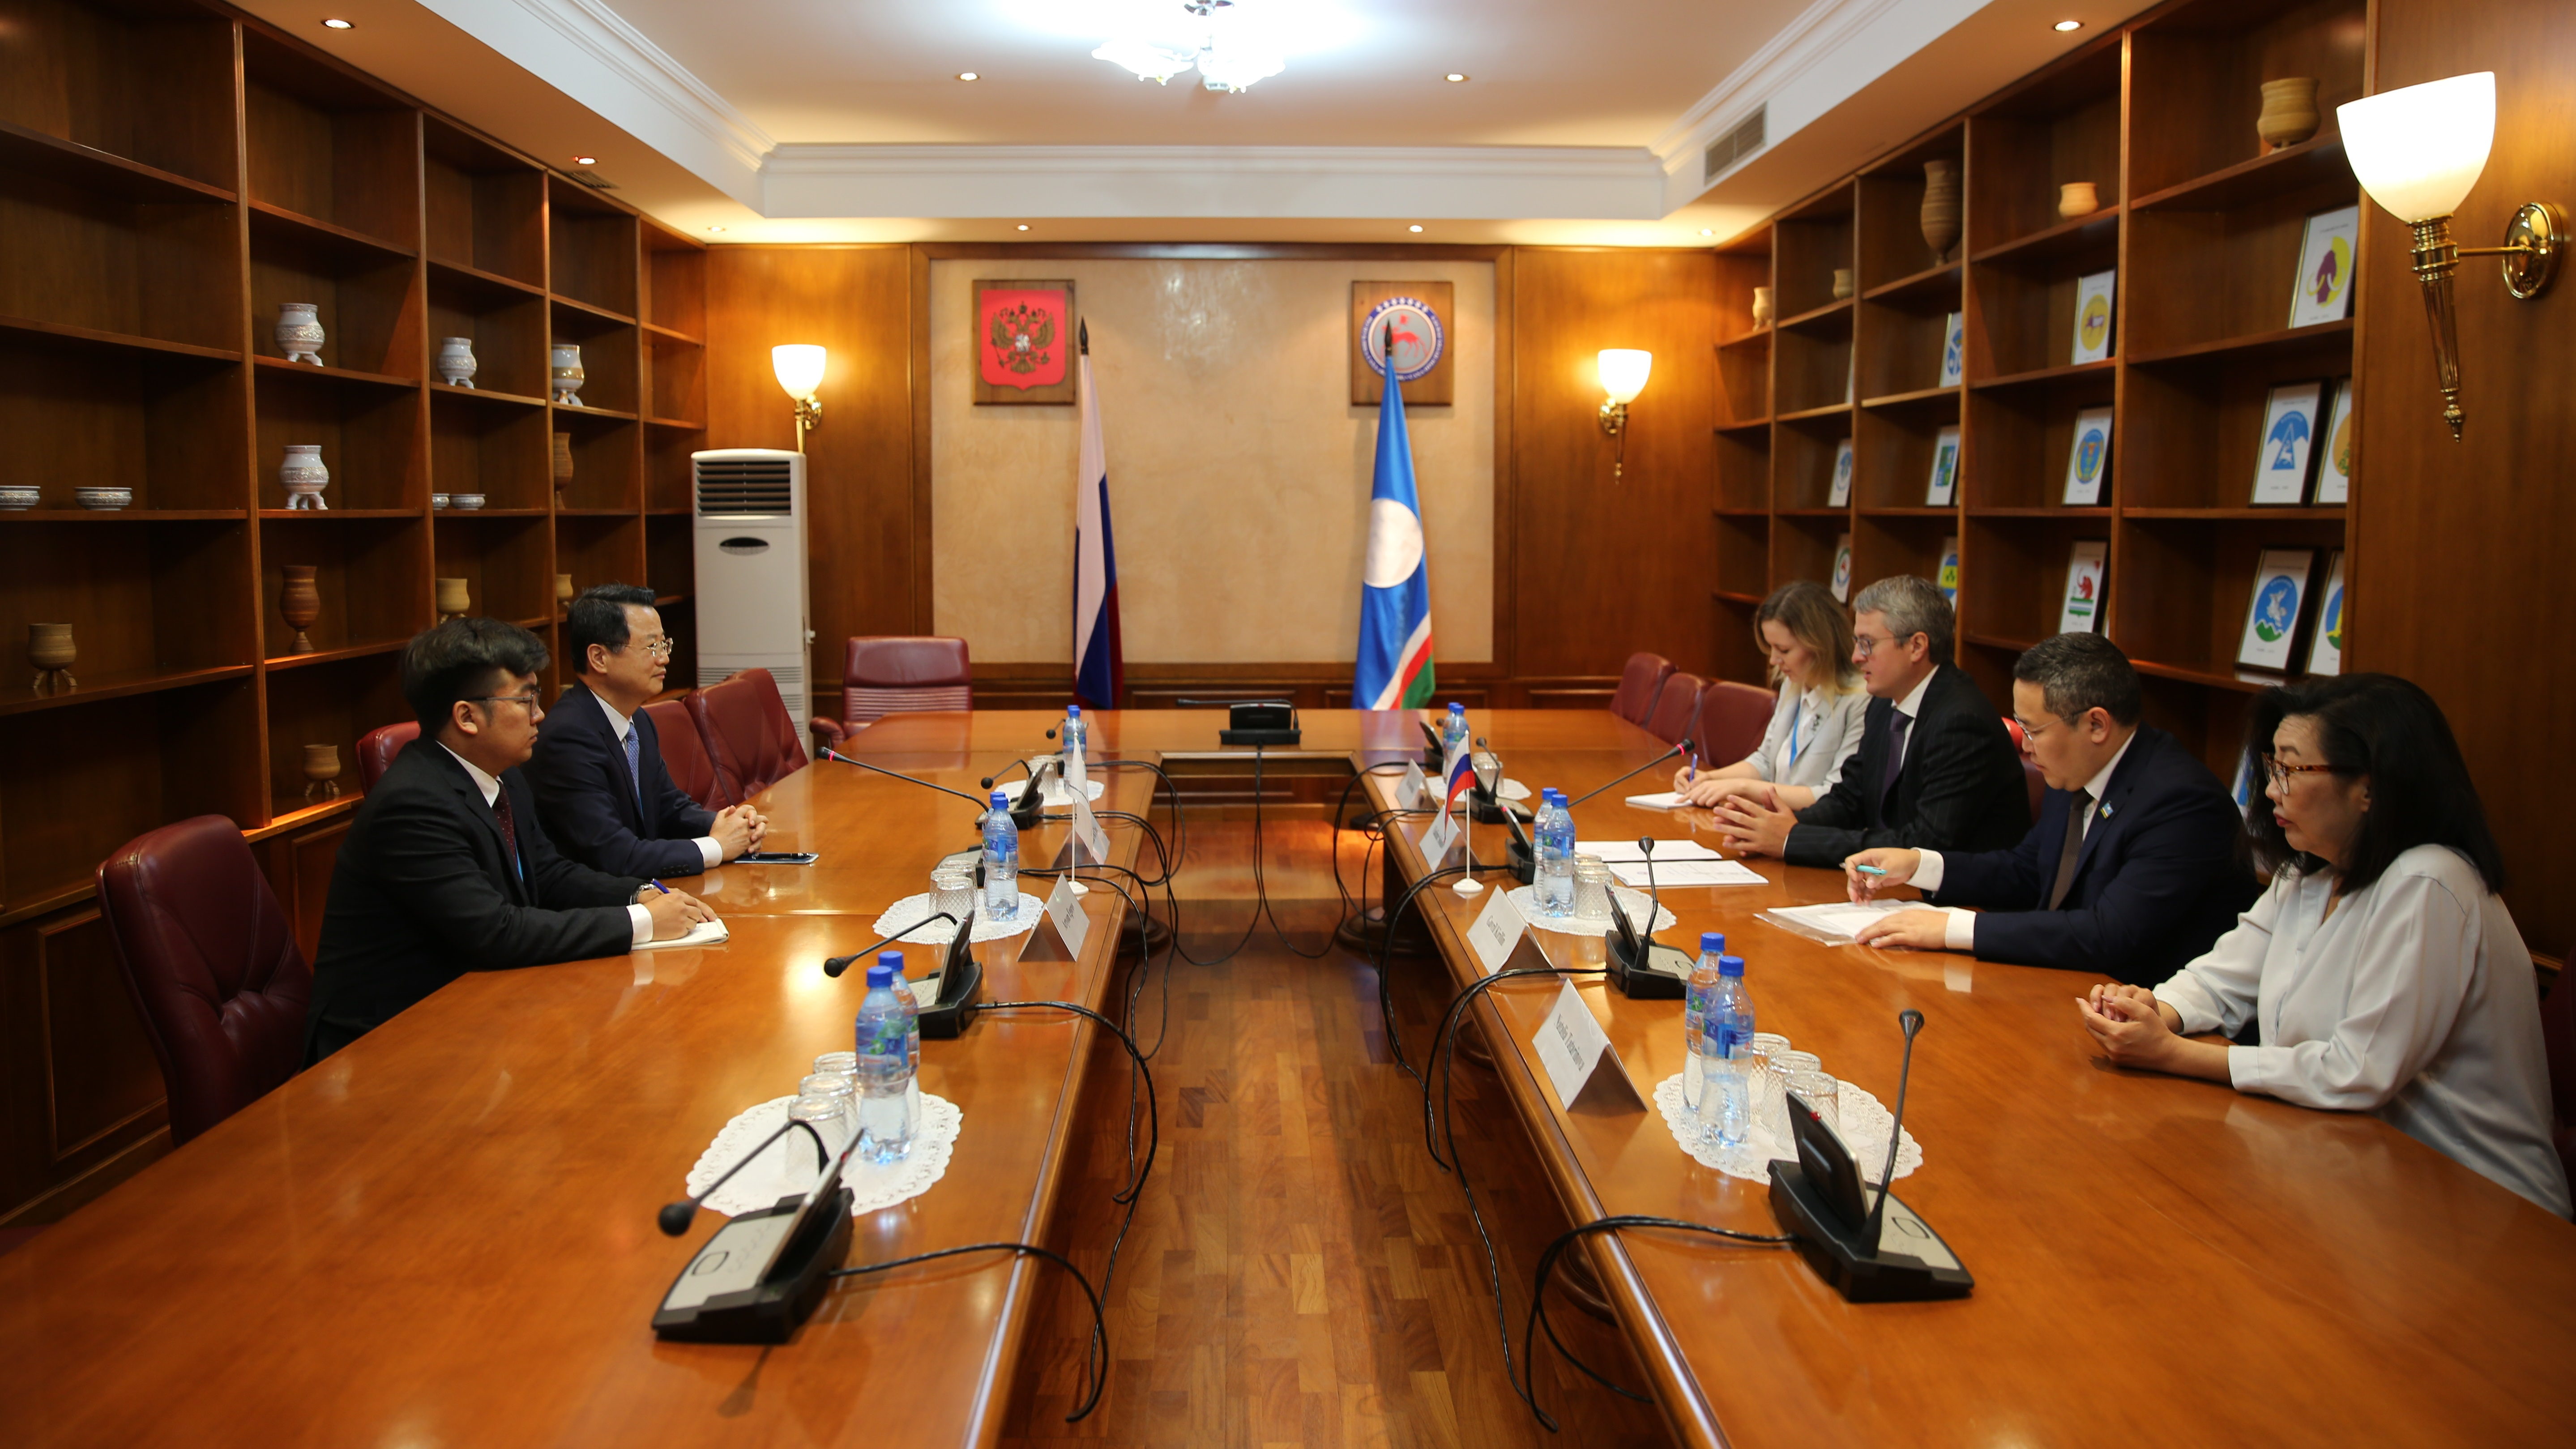 Secretary General Kim Ok-chae Meets with Prime Minister of the Republic of Sakha Vladimir Solodorf